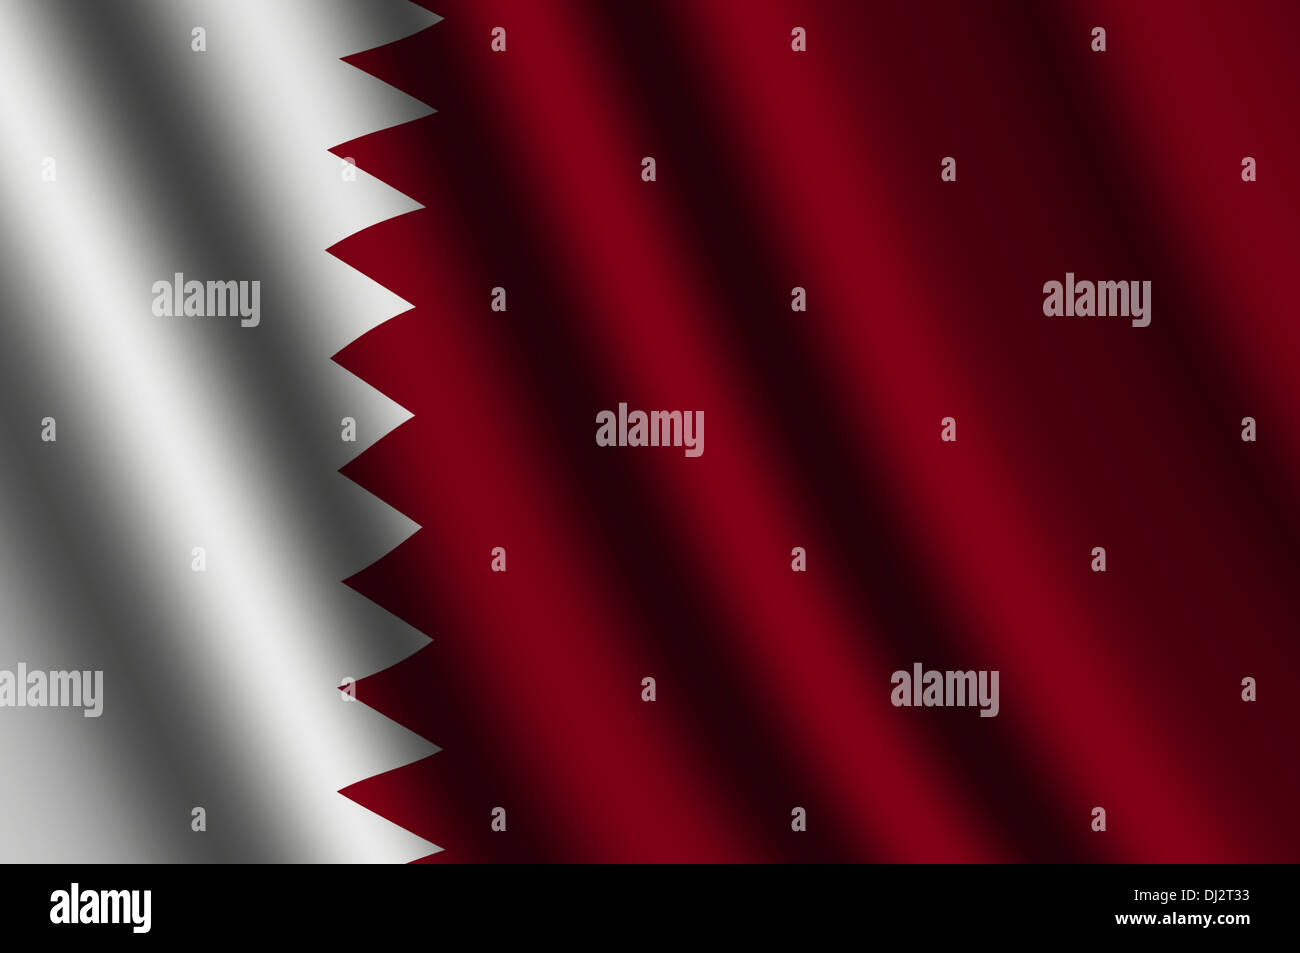 The Qatari flag Stock Photo